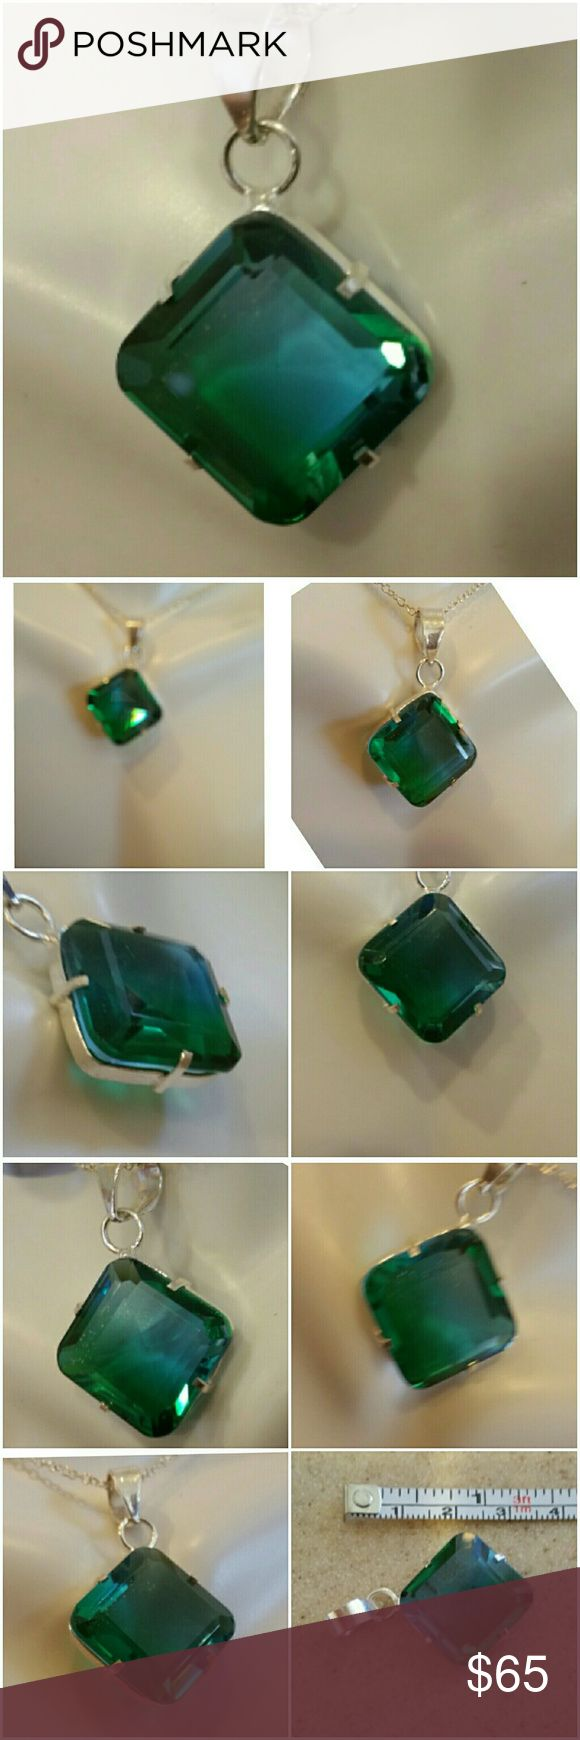 Genuine 6ct Blue/Green Tourmaline Pendant Double Color Tourmaline. ...such a beauty!  Set in 925 stamped Solid Sterling Silver. Please see all pictures for details. Brand New. Never Worn. Wholesale Prices. MSRP 560.00 Jewelry Necklaces